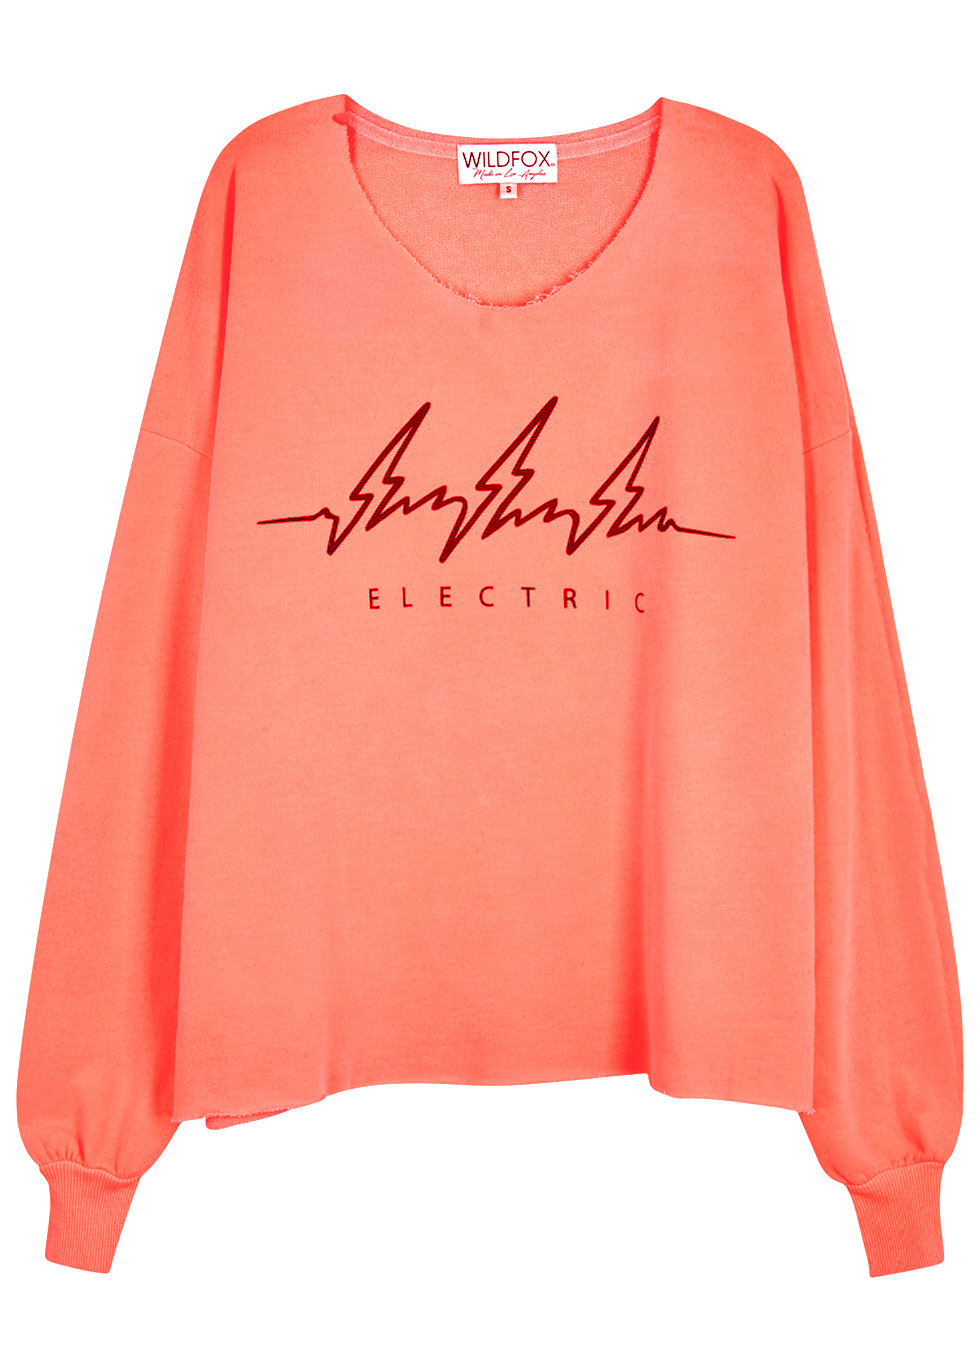 Electric 5 Am Neon Coral Jersey Sweatshirt Size - neckline: round neck; style: sweat top; sleeve style: balloon; secondary colour: burgundy; predominant colour: coral; occasions: casual; length: standard; fibres: cotton - mix; fit: loose; sleeve length: long sleeve; pattern type: fabric; pattern size: standard; pattern: patterned/print; texture group: jersey - stretchy/drapey; season: a/w 2016; wardrobe: highlight